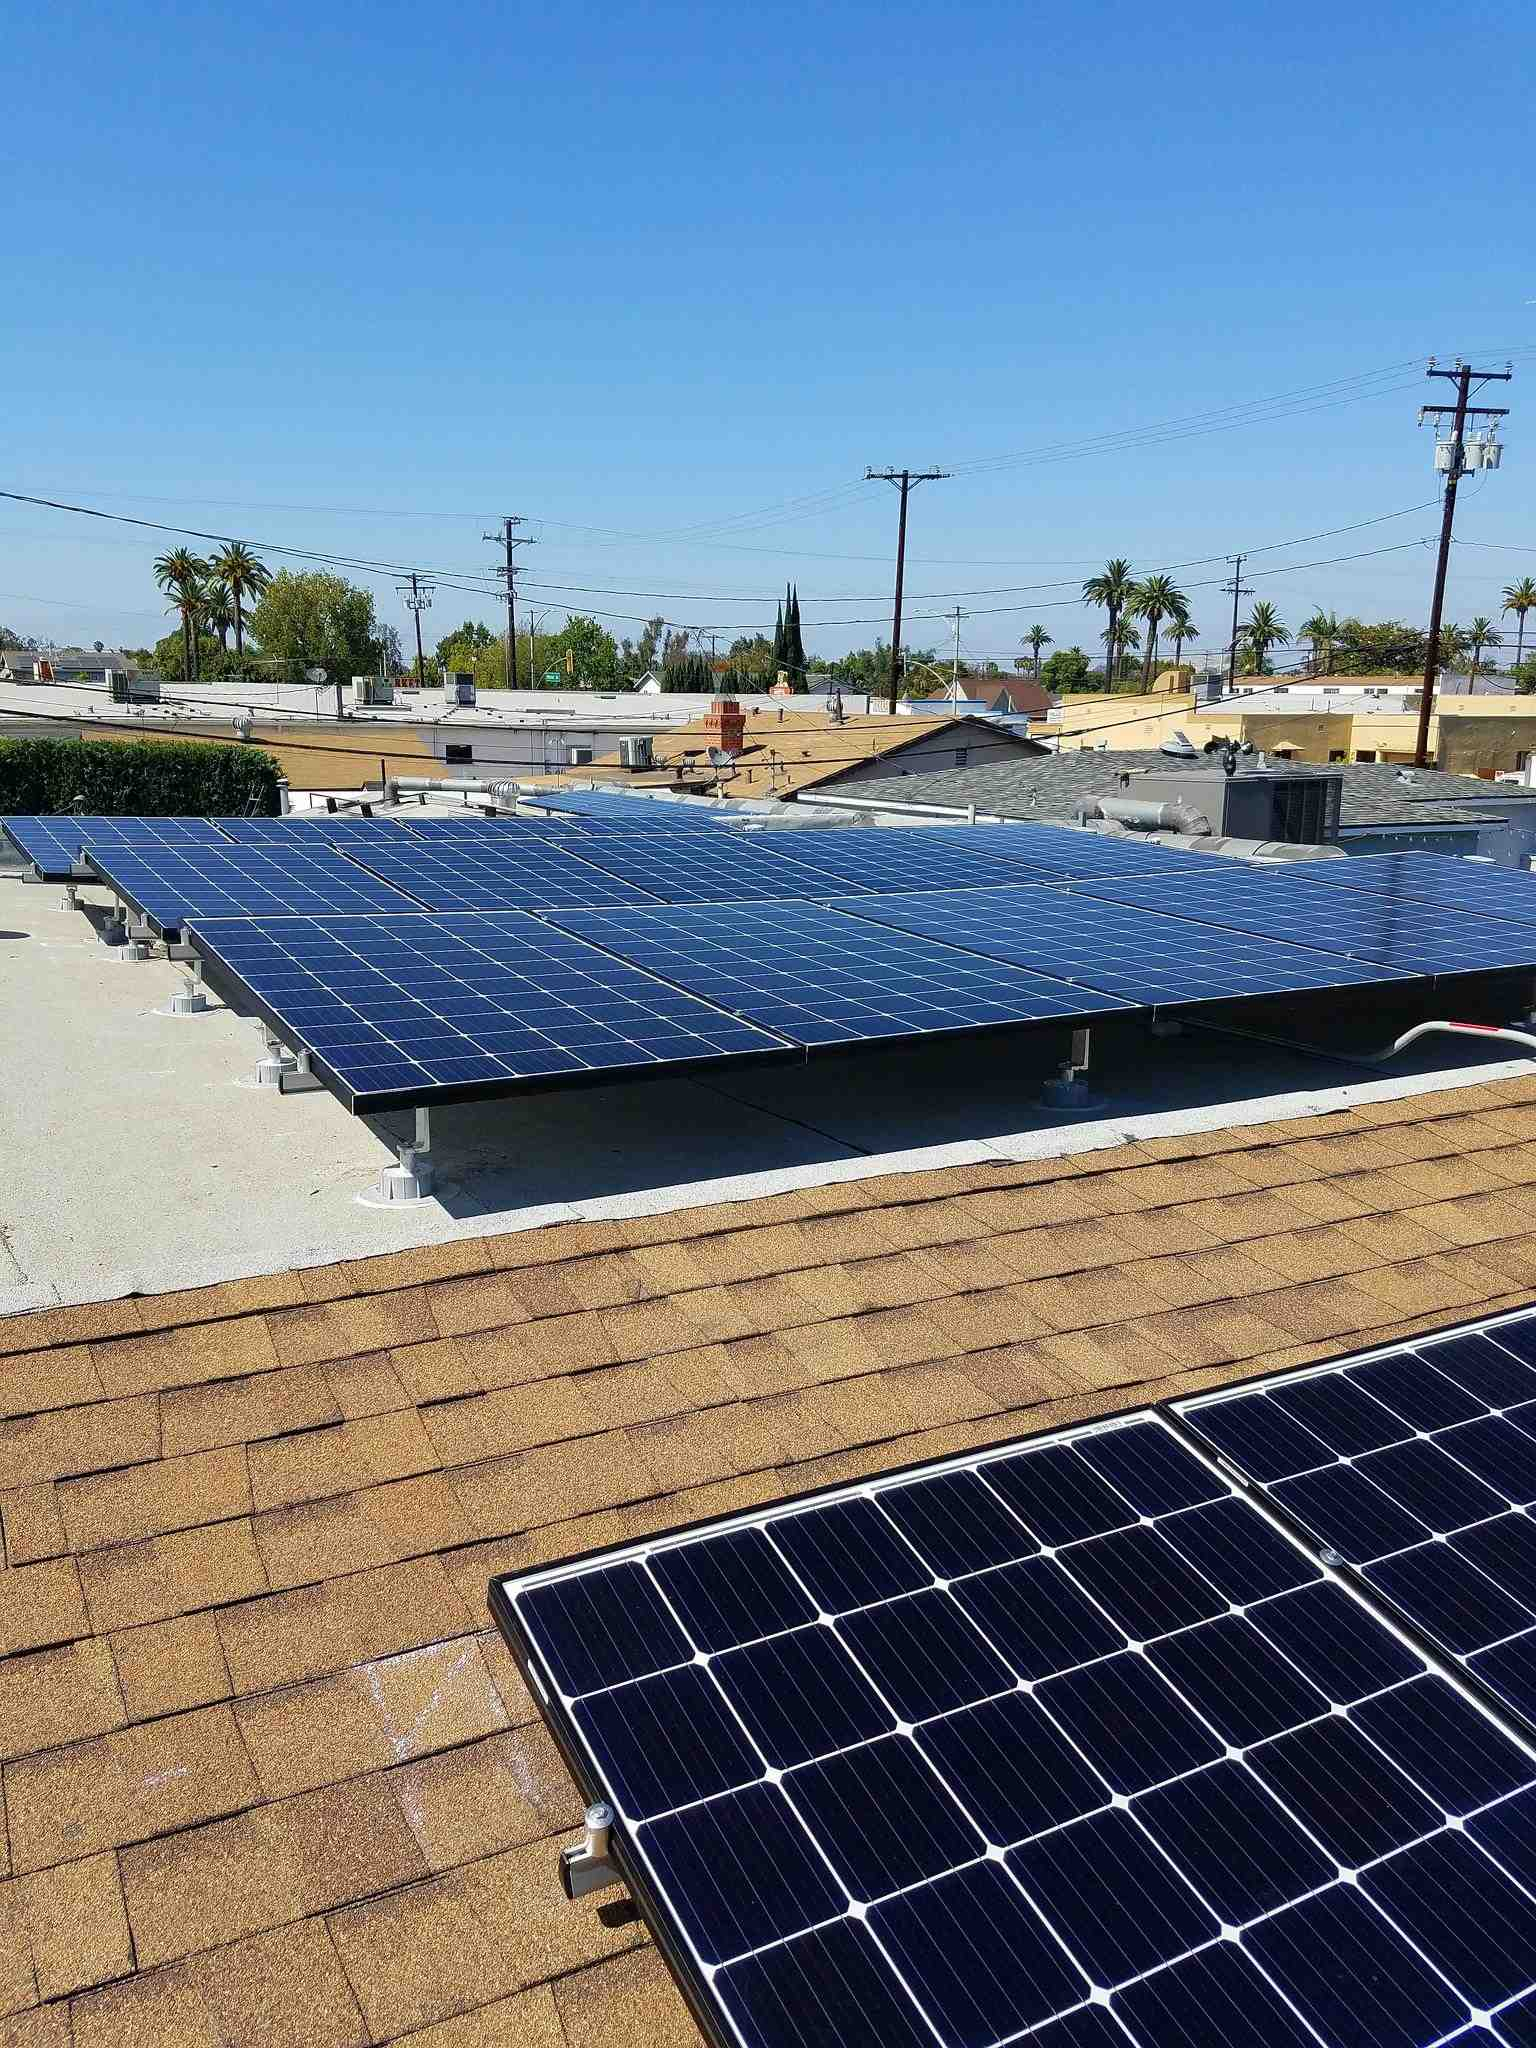 How much does it cost for someone to install solar panels?